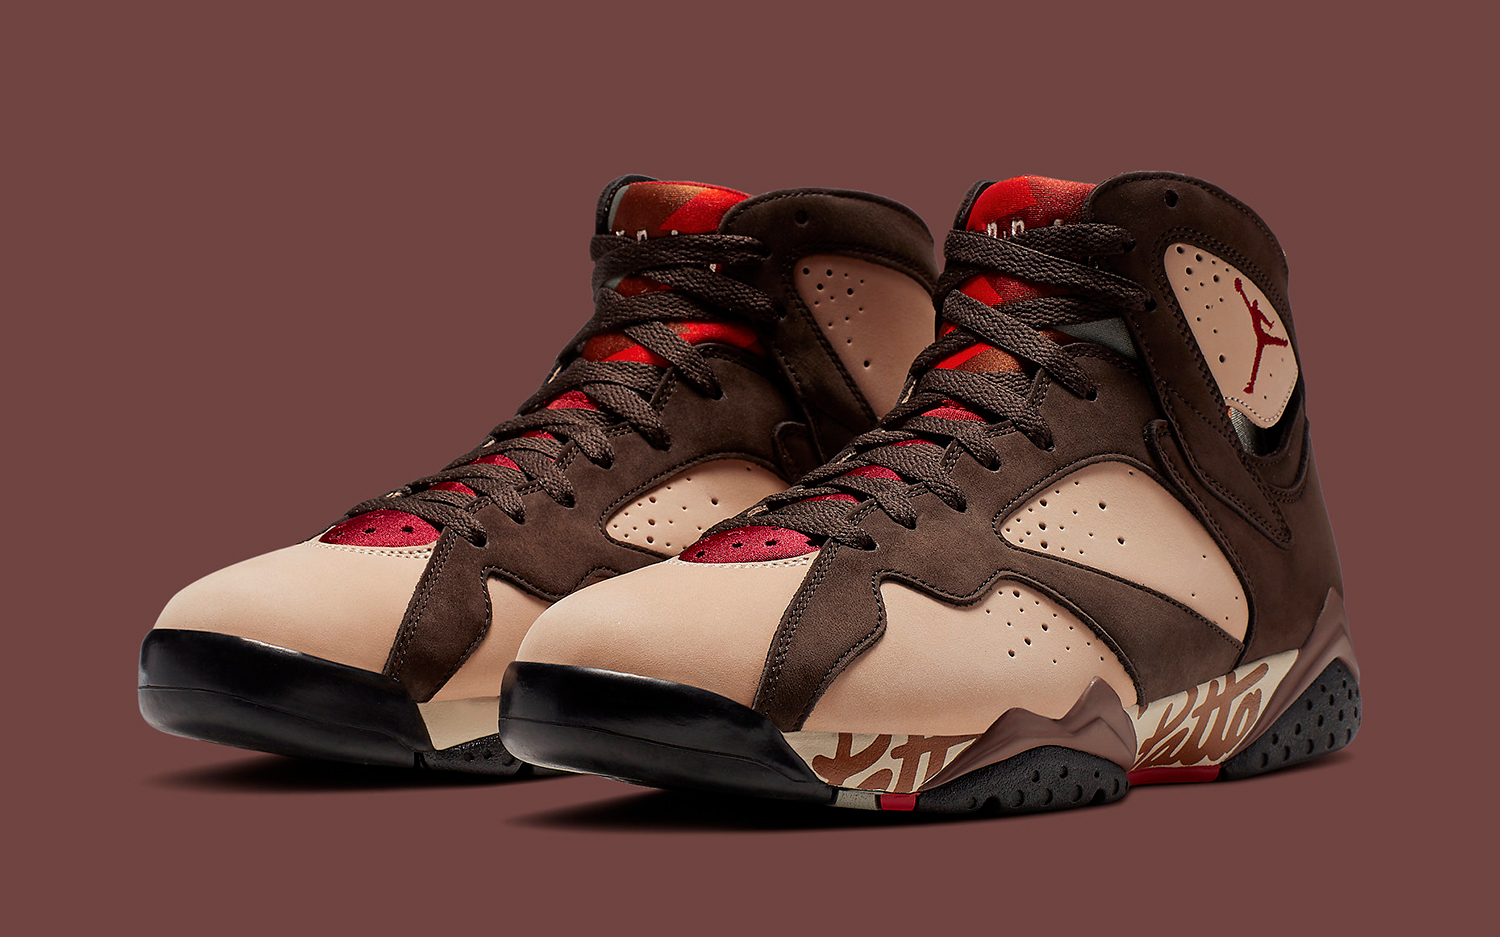 462d33f535e24 Where to Buy the Patta x Air Jordan 7 - HOUSE OF HEAT | Sneaker ...